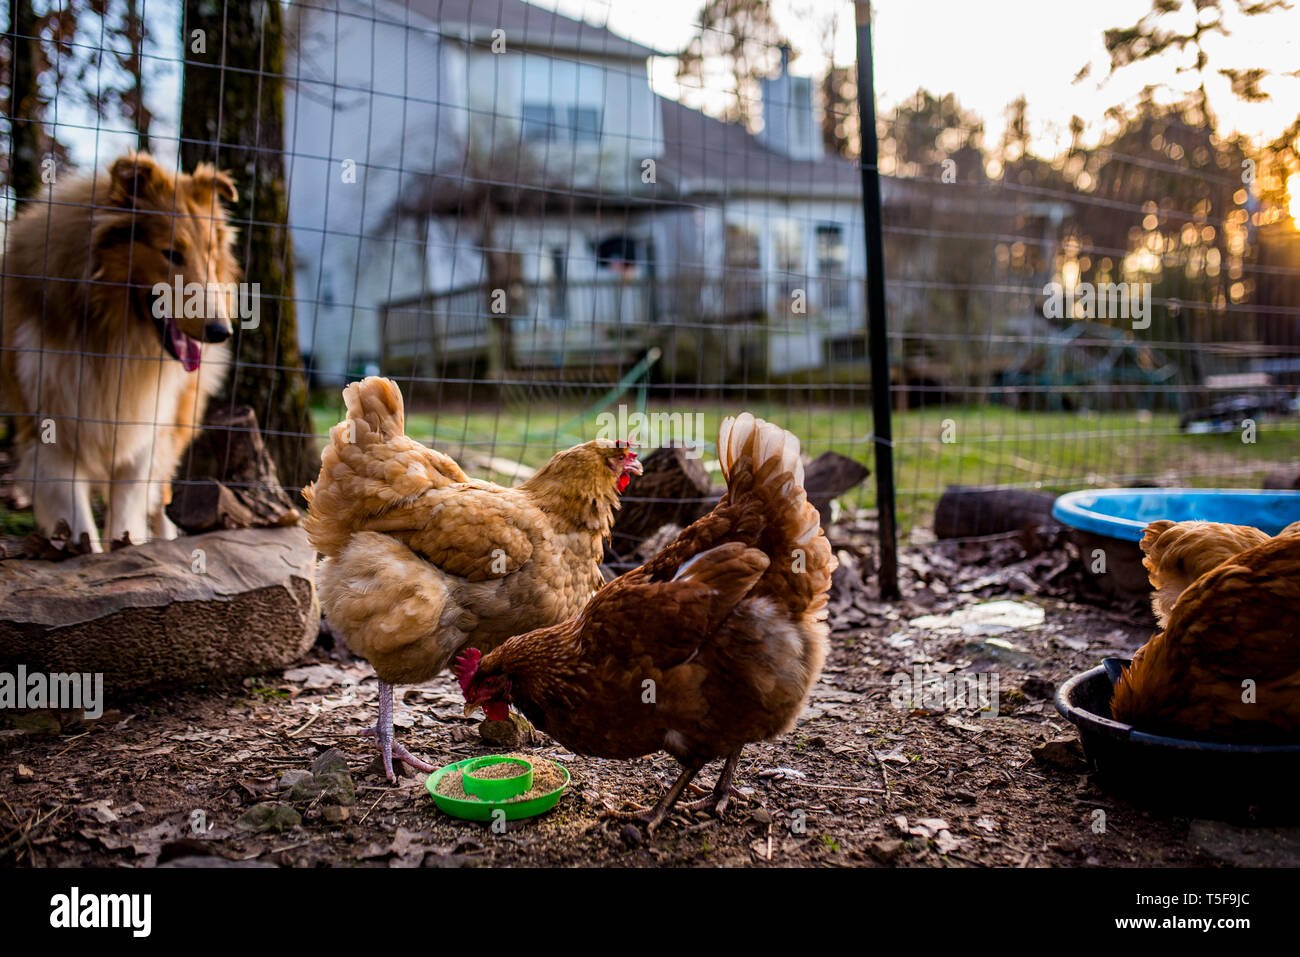 Curious collie watches backyard chickens eat at sunset - Stock Image